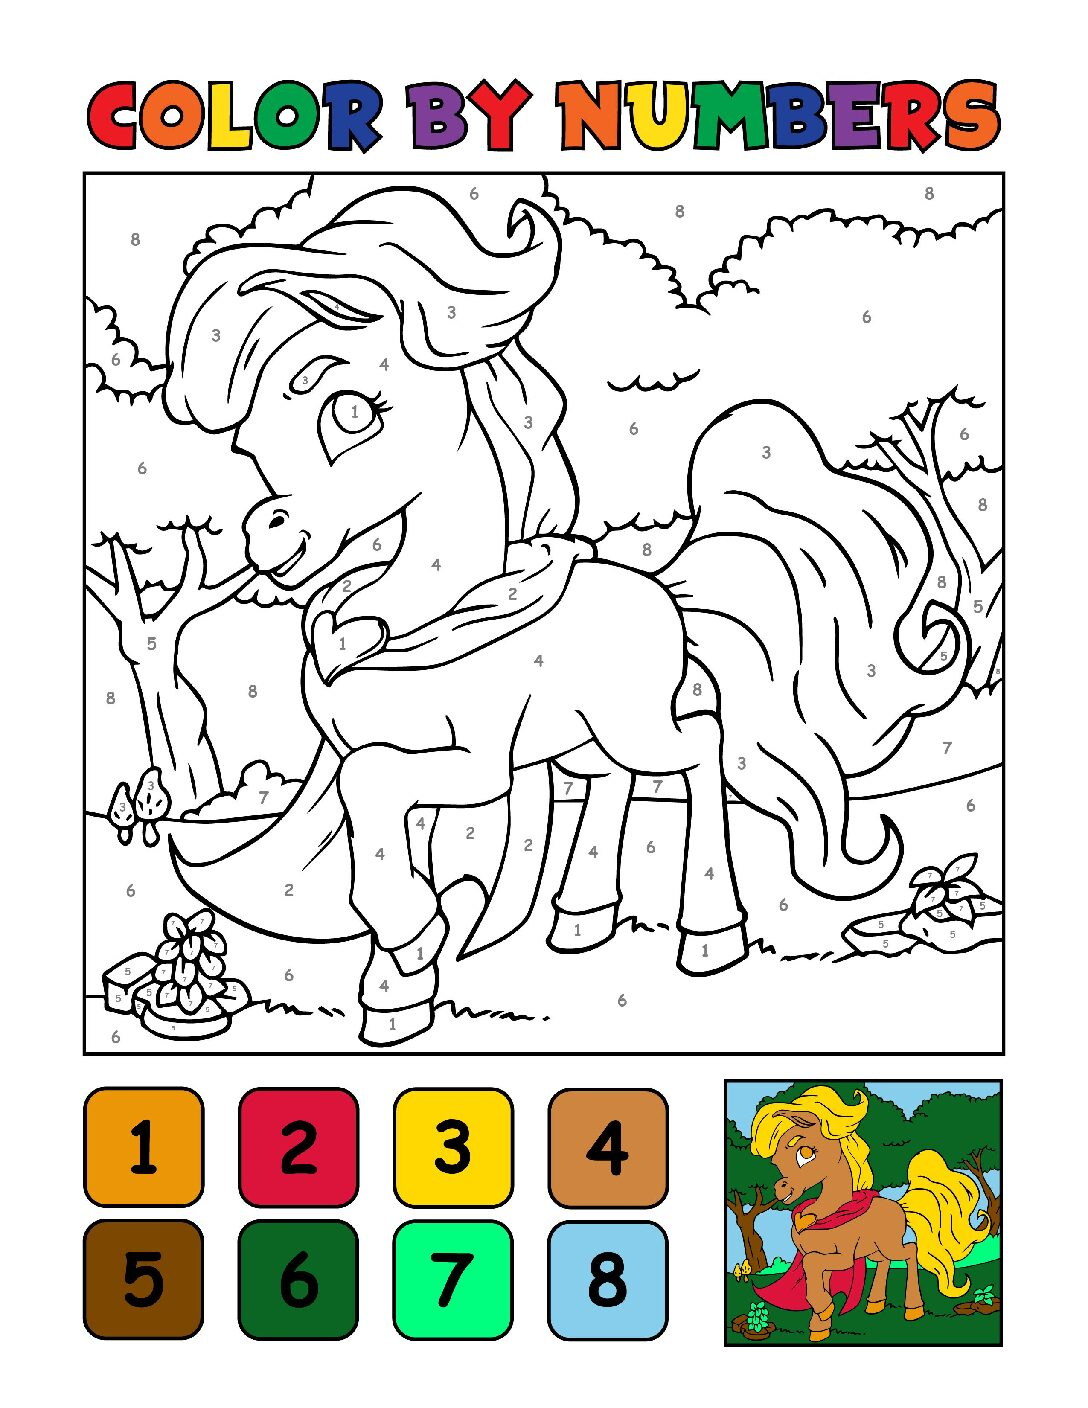 Color-by-Numbers-Kids_Unicorns-9-01-pdf Free Printable Unicorn Colouring Pages